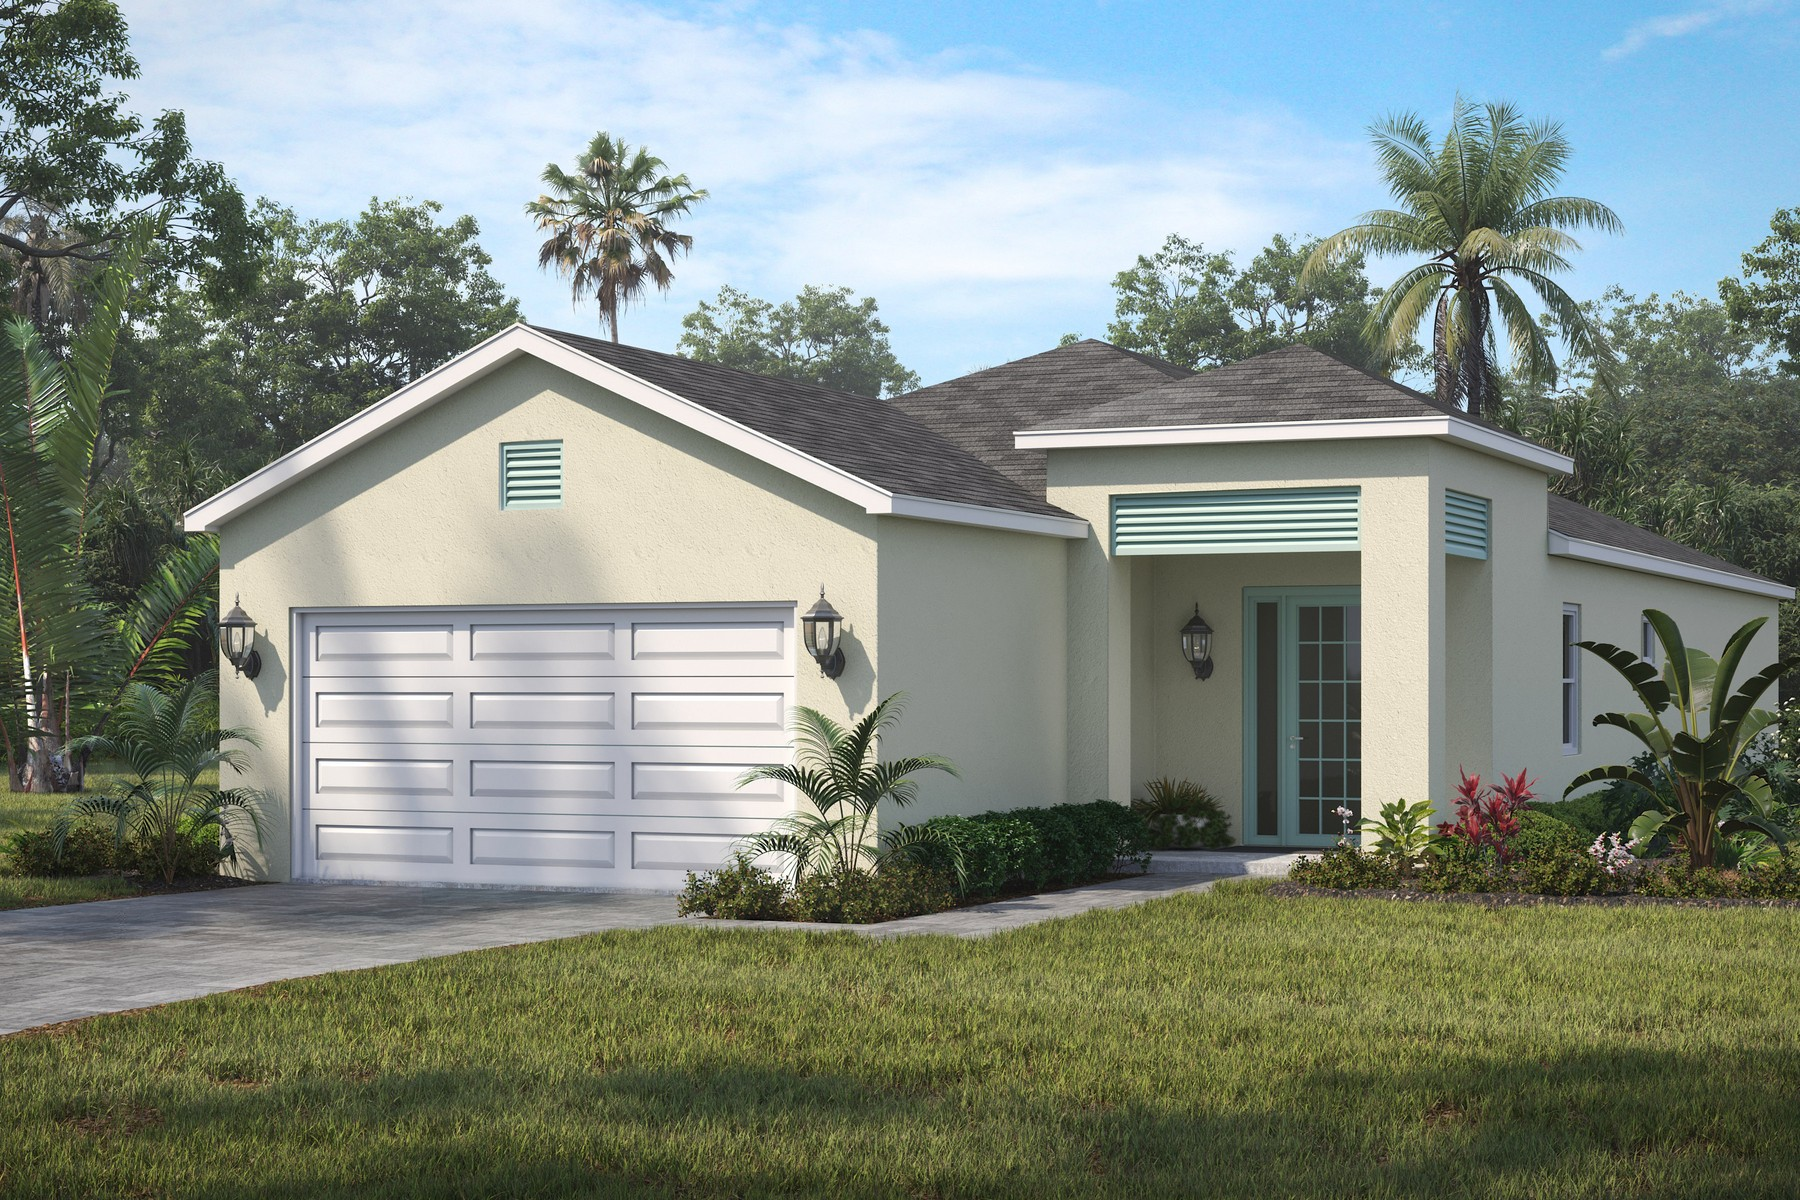 Single Family Homes for Sale at New Falls III Model! 2160 Falls Manor Vero Beach, Florida 32967 United States